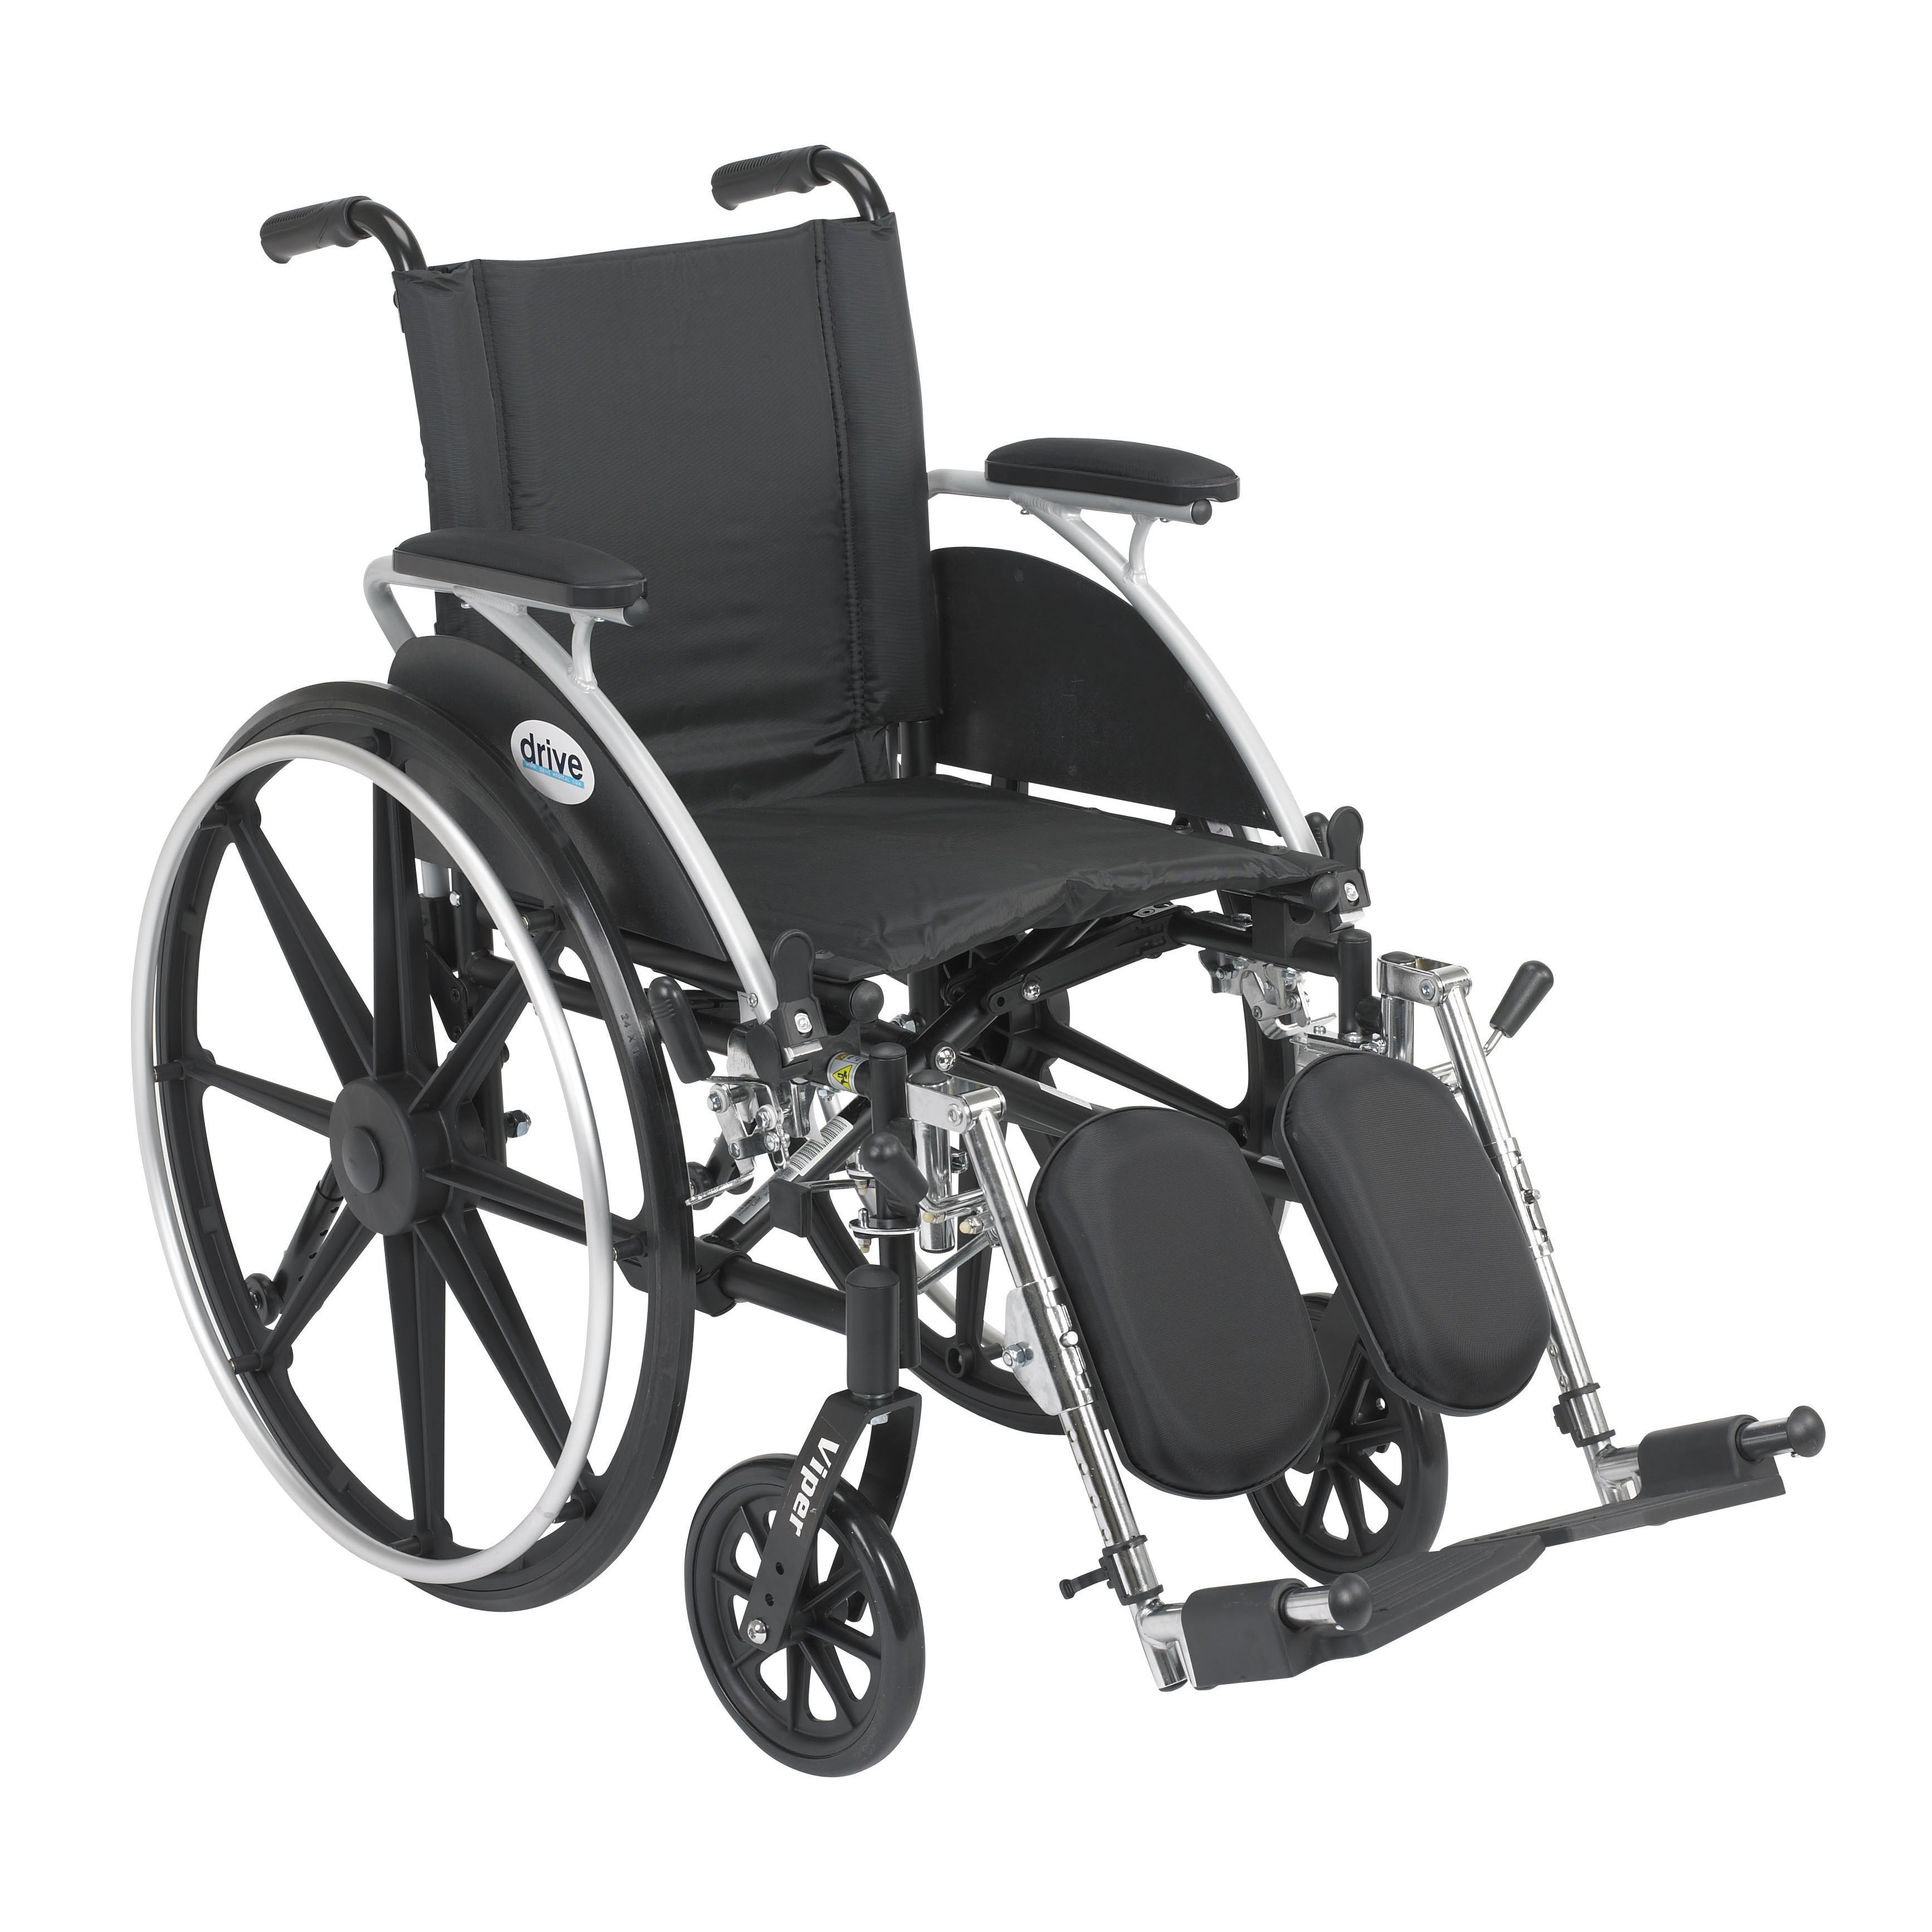 Invacare Tracer SX5 Wheelchair, Flip-Back Desk-Length Arms